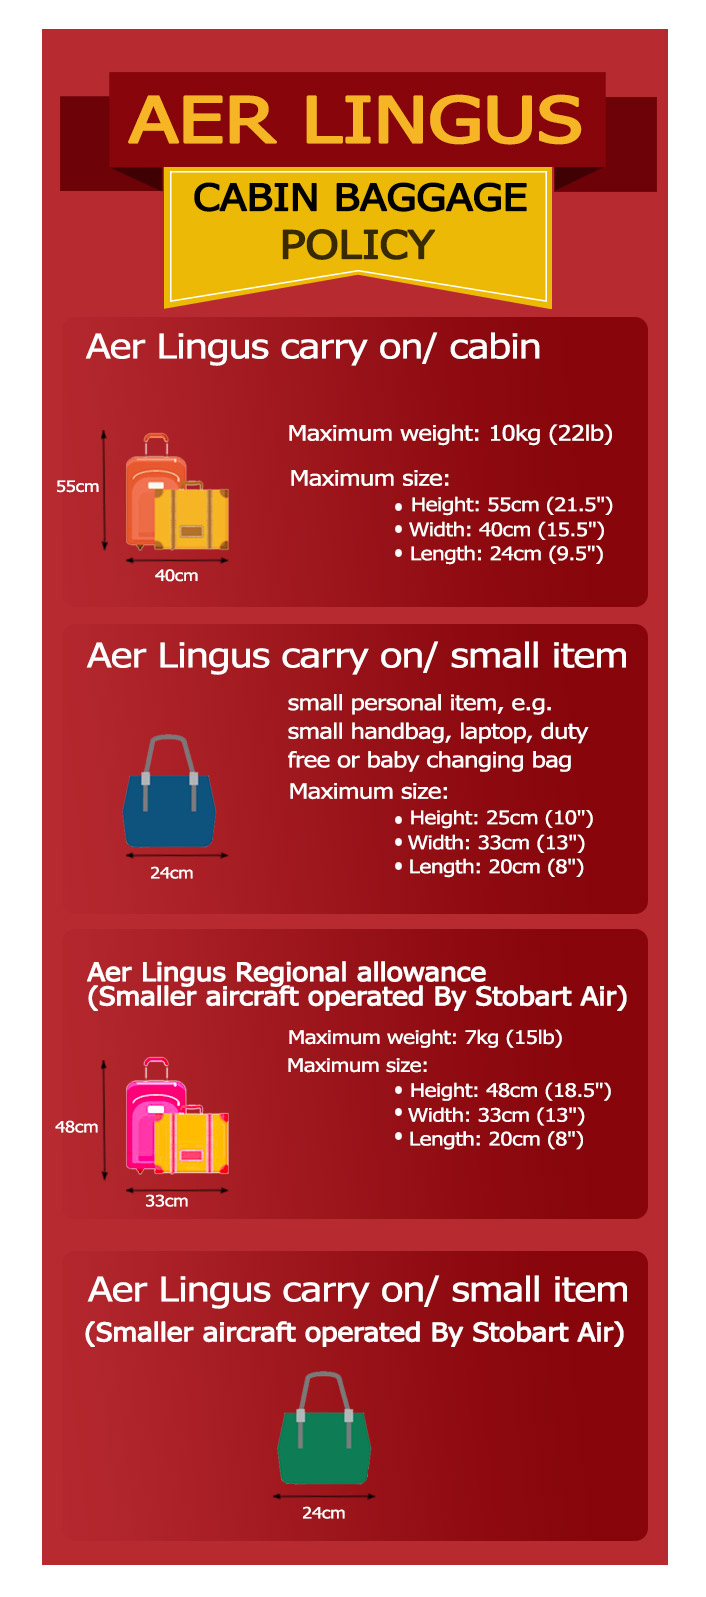 Aer lingus baggage policy 2020 | How strict is aer lingus